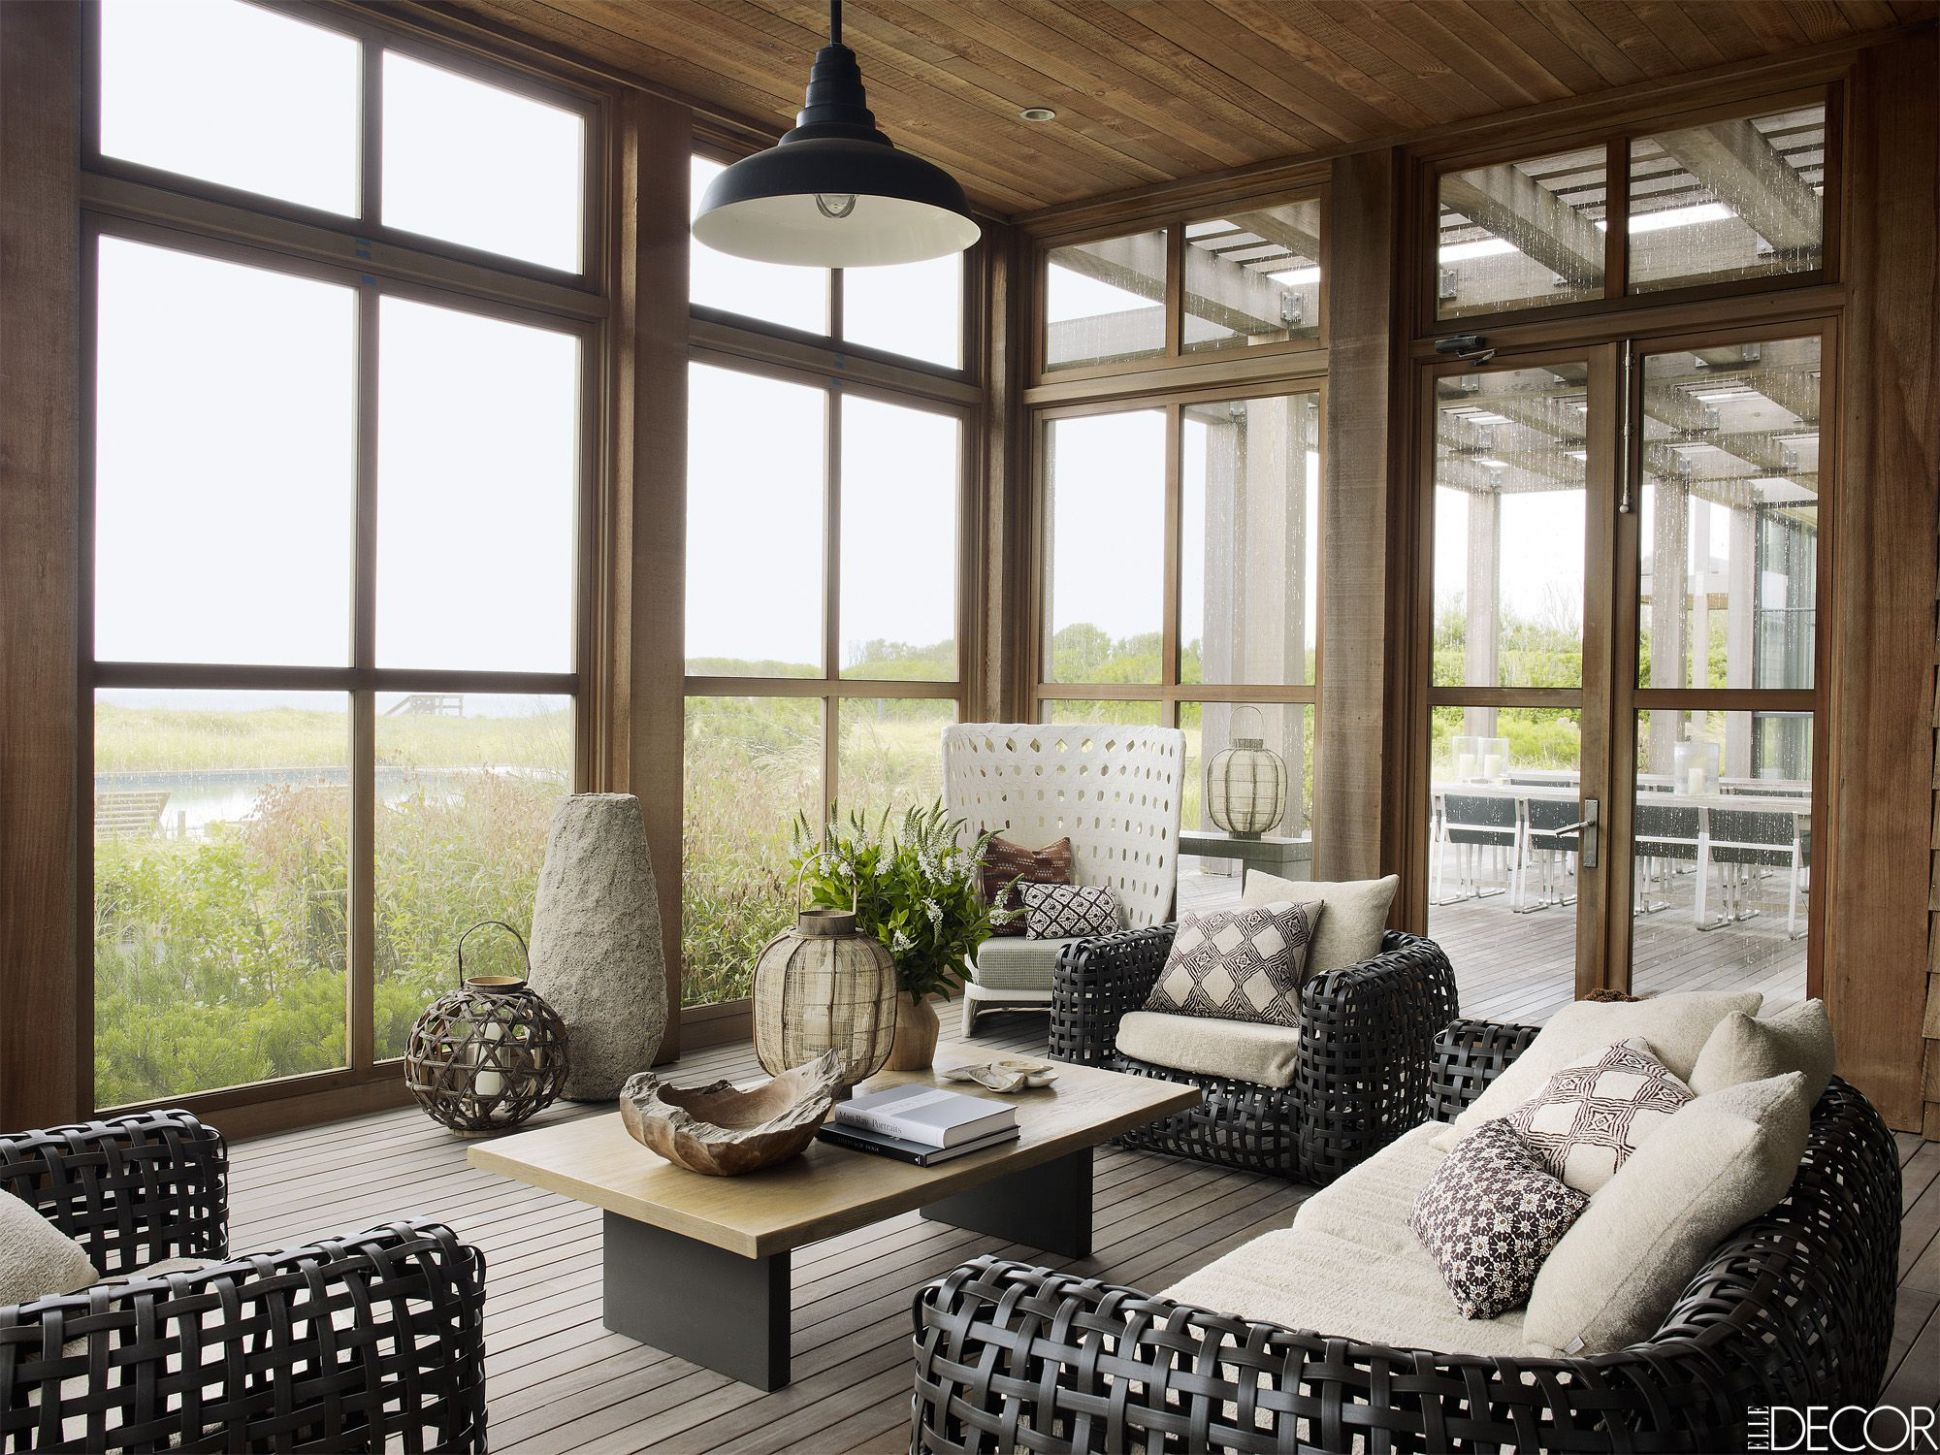 Sunroom Ideas To Make More Elegant 8 - Sierraresgroup